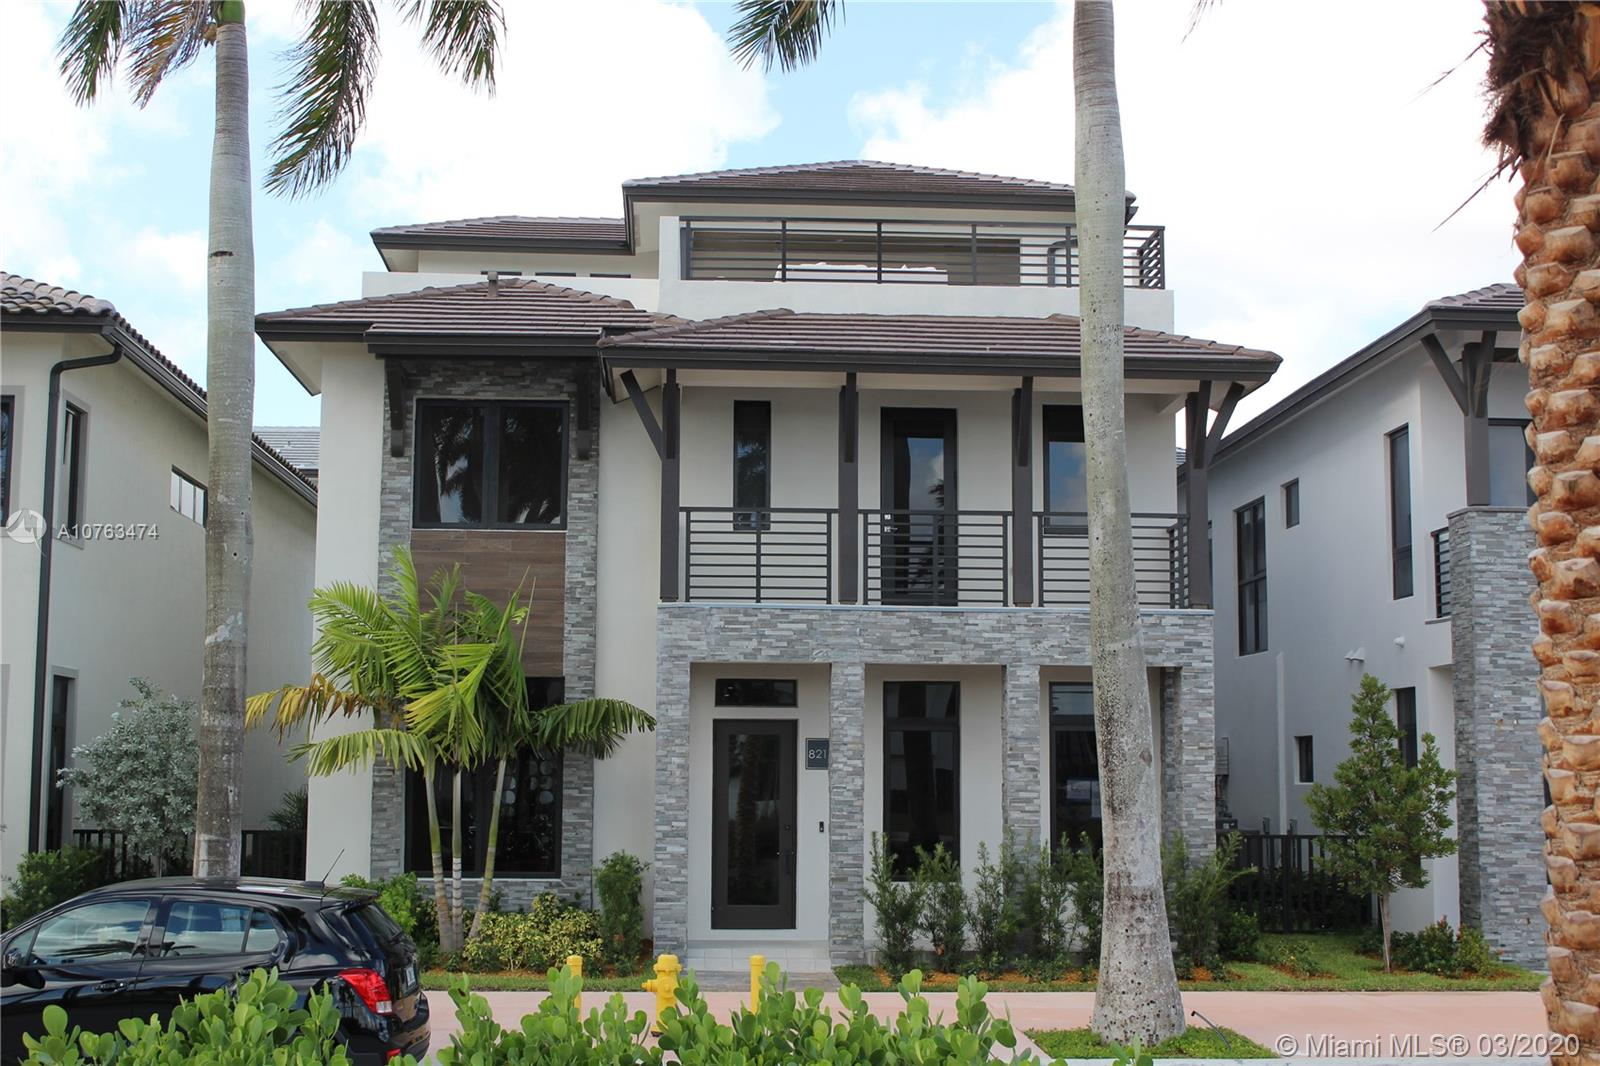 8215  CENTRAL PARK BLVD.  For Sale A10763474, FL